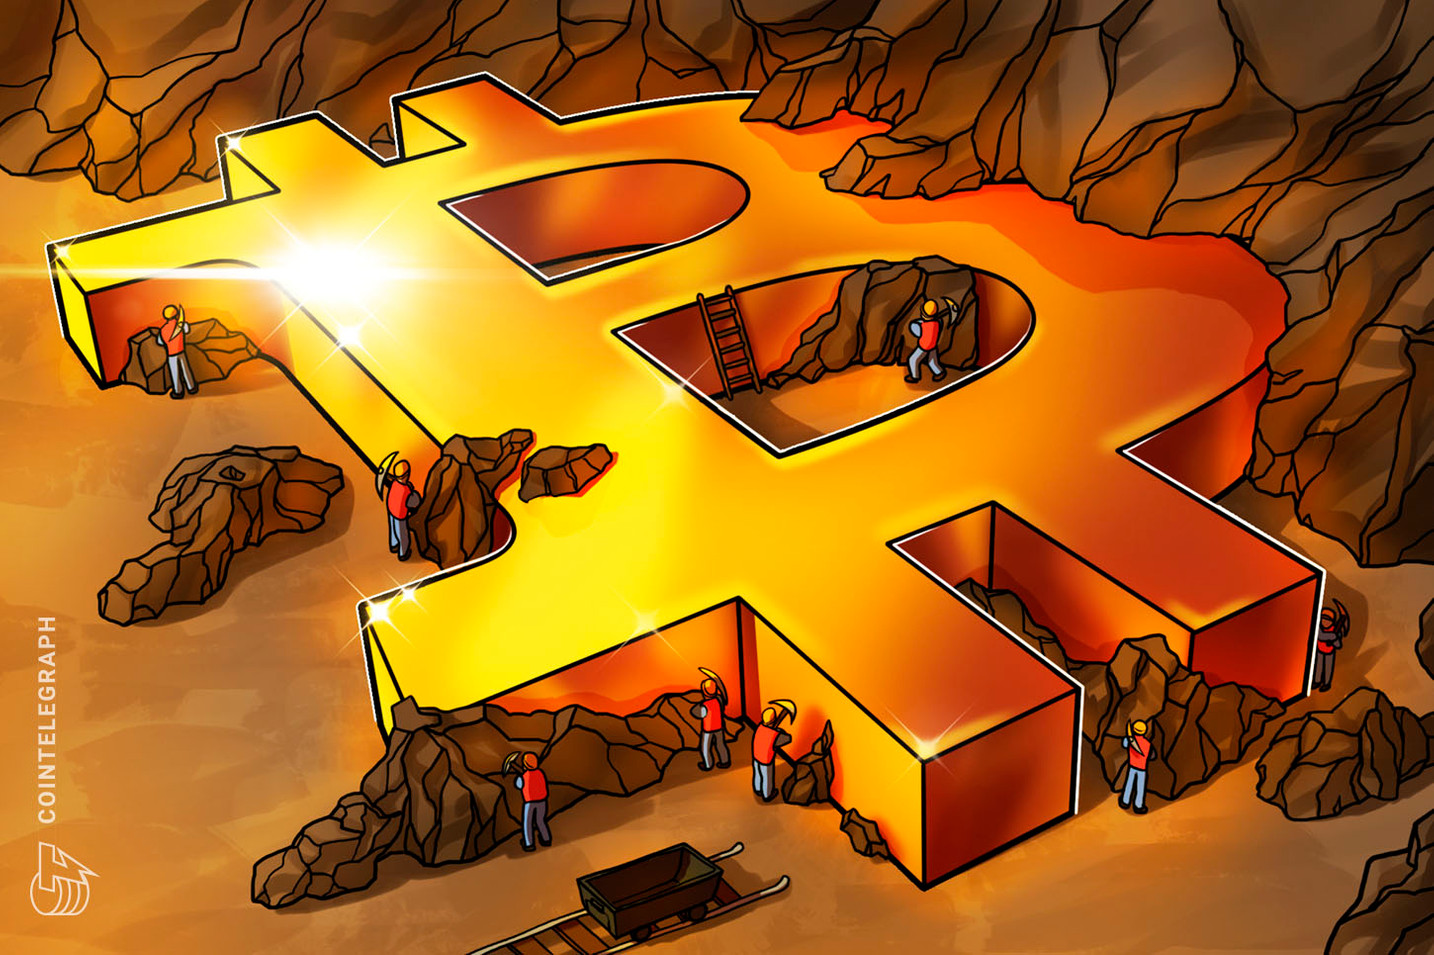 The9 signs green Bitcoin mining deal with Russian firm BitRiver